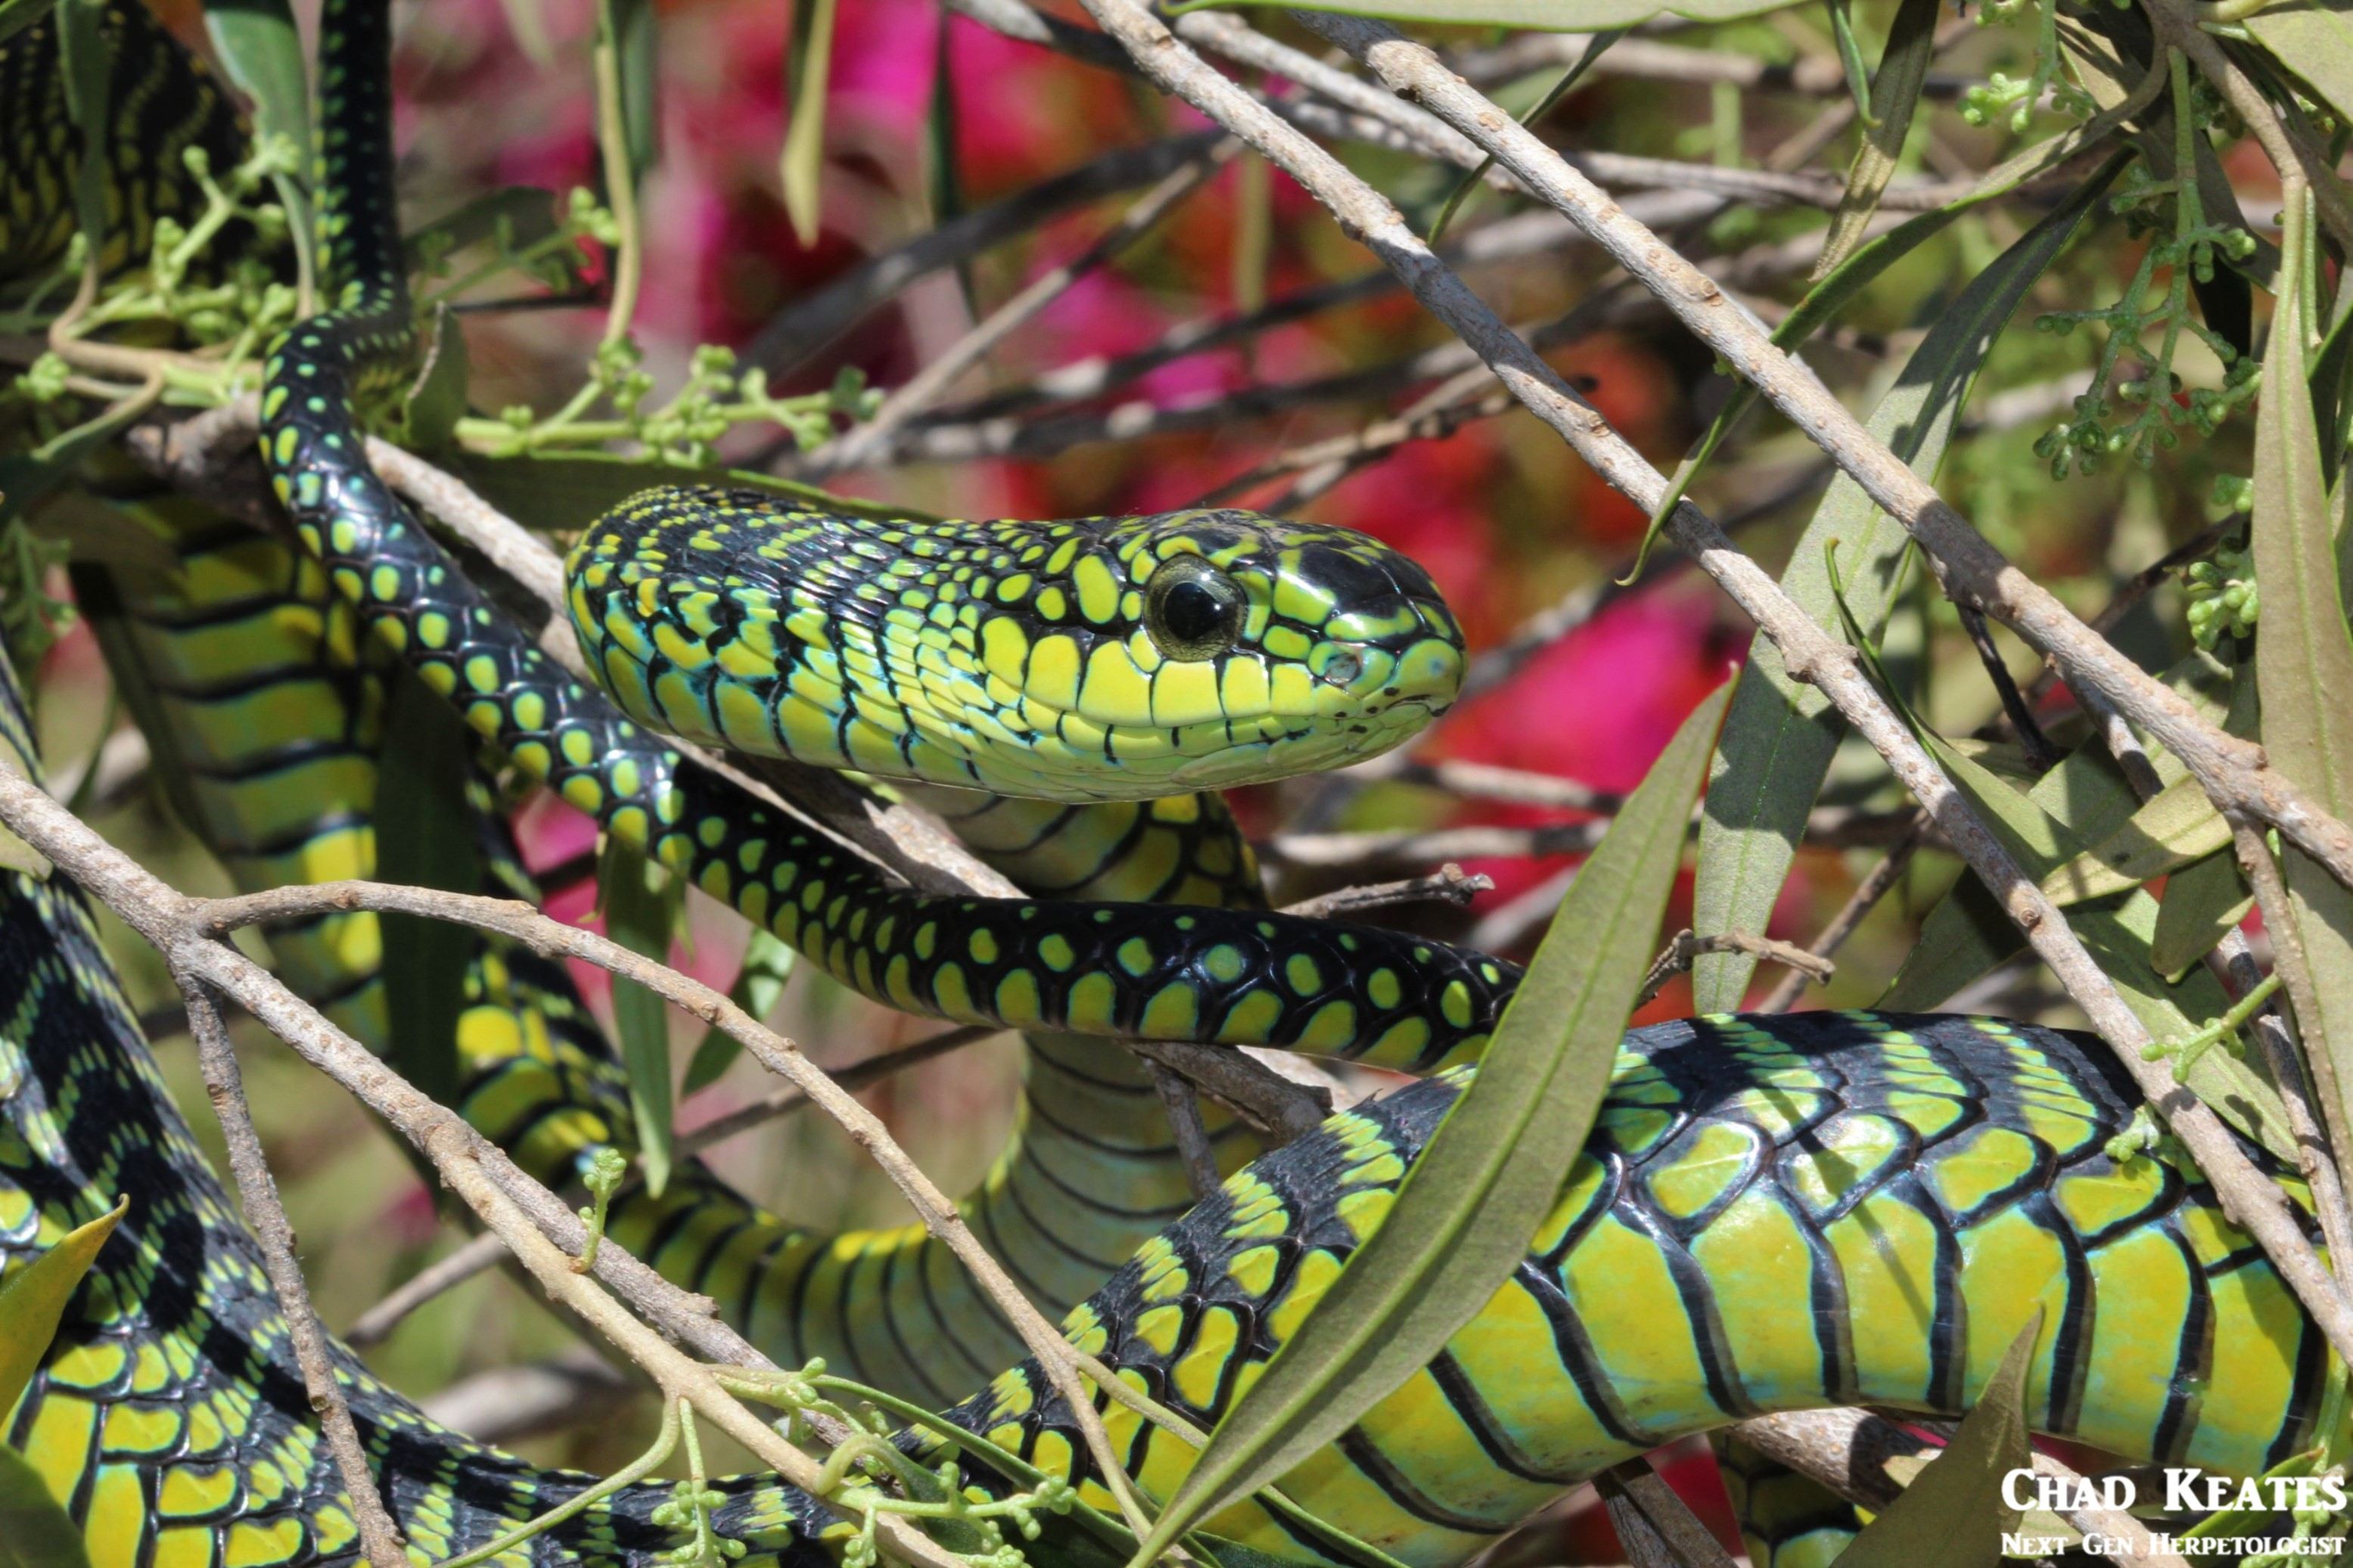 Male Boomslang (Dispholidus typus typus)